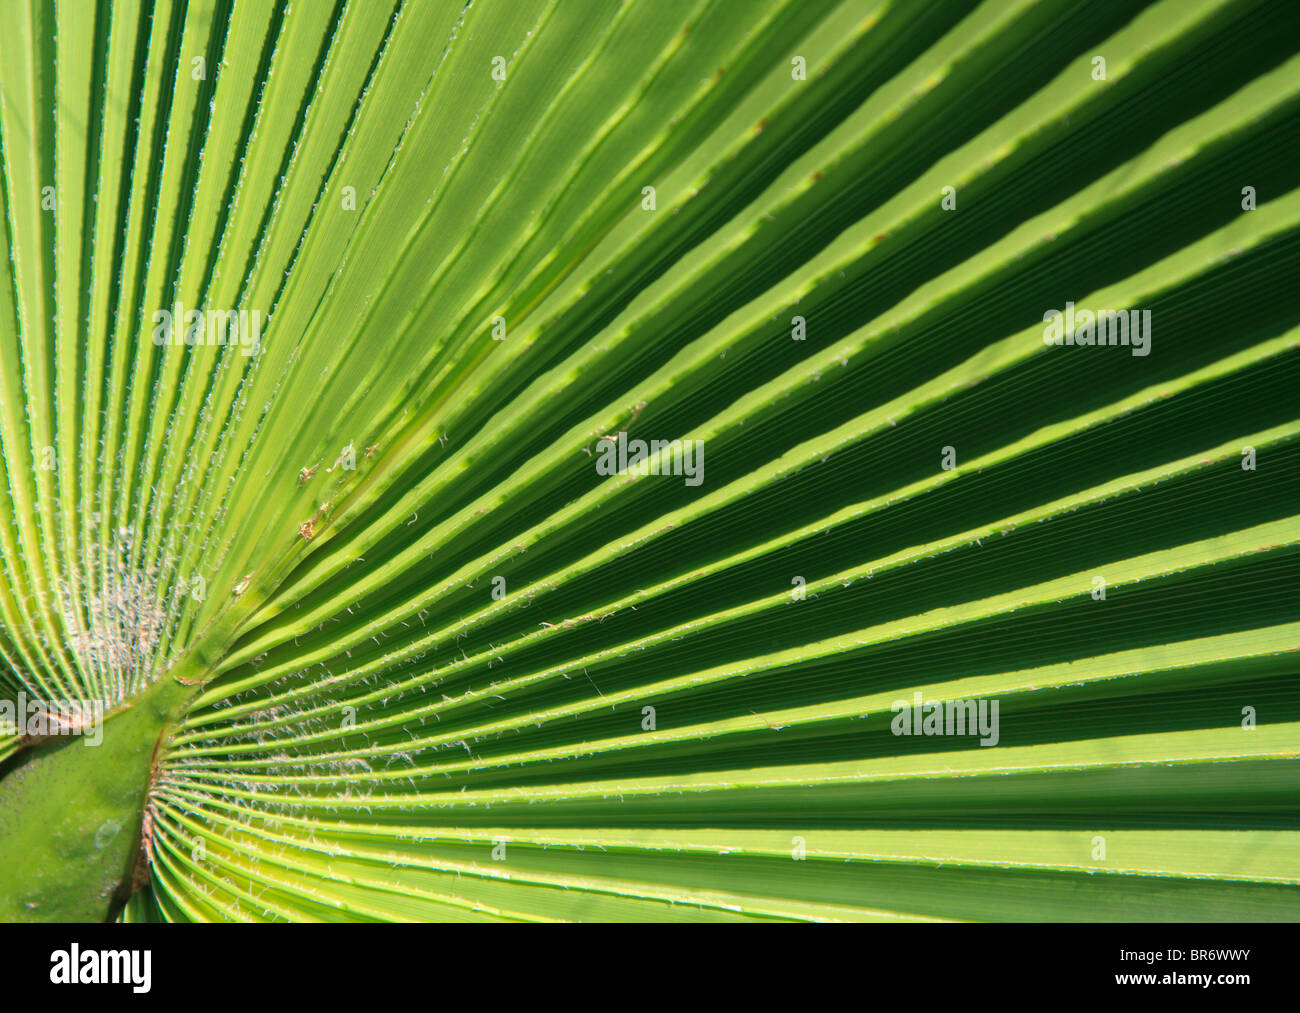 Very detailed high resolution close-up shot of a fresh green palm leave Stock Photo